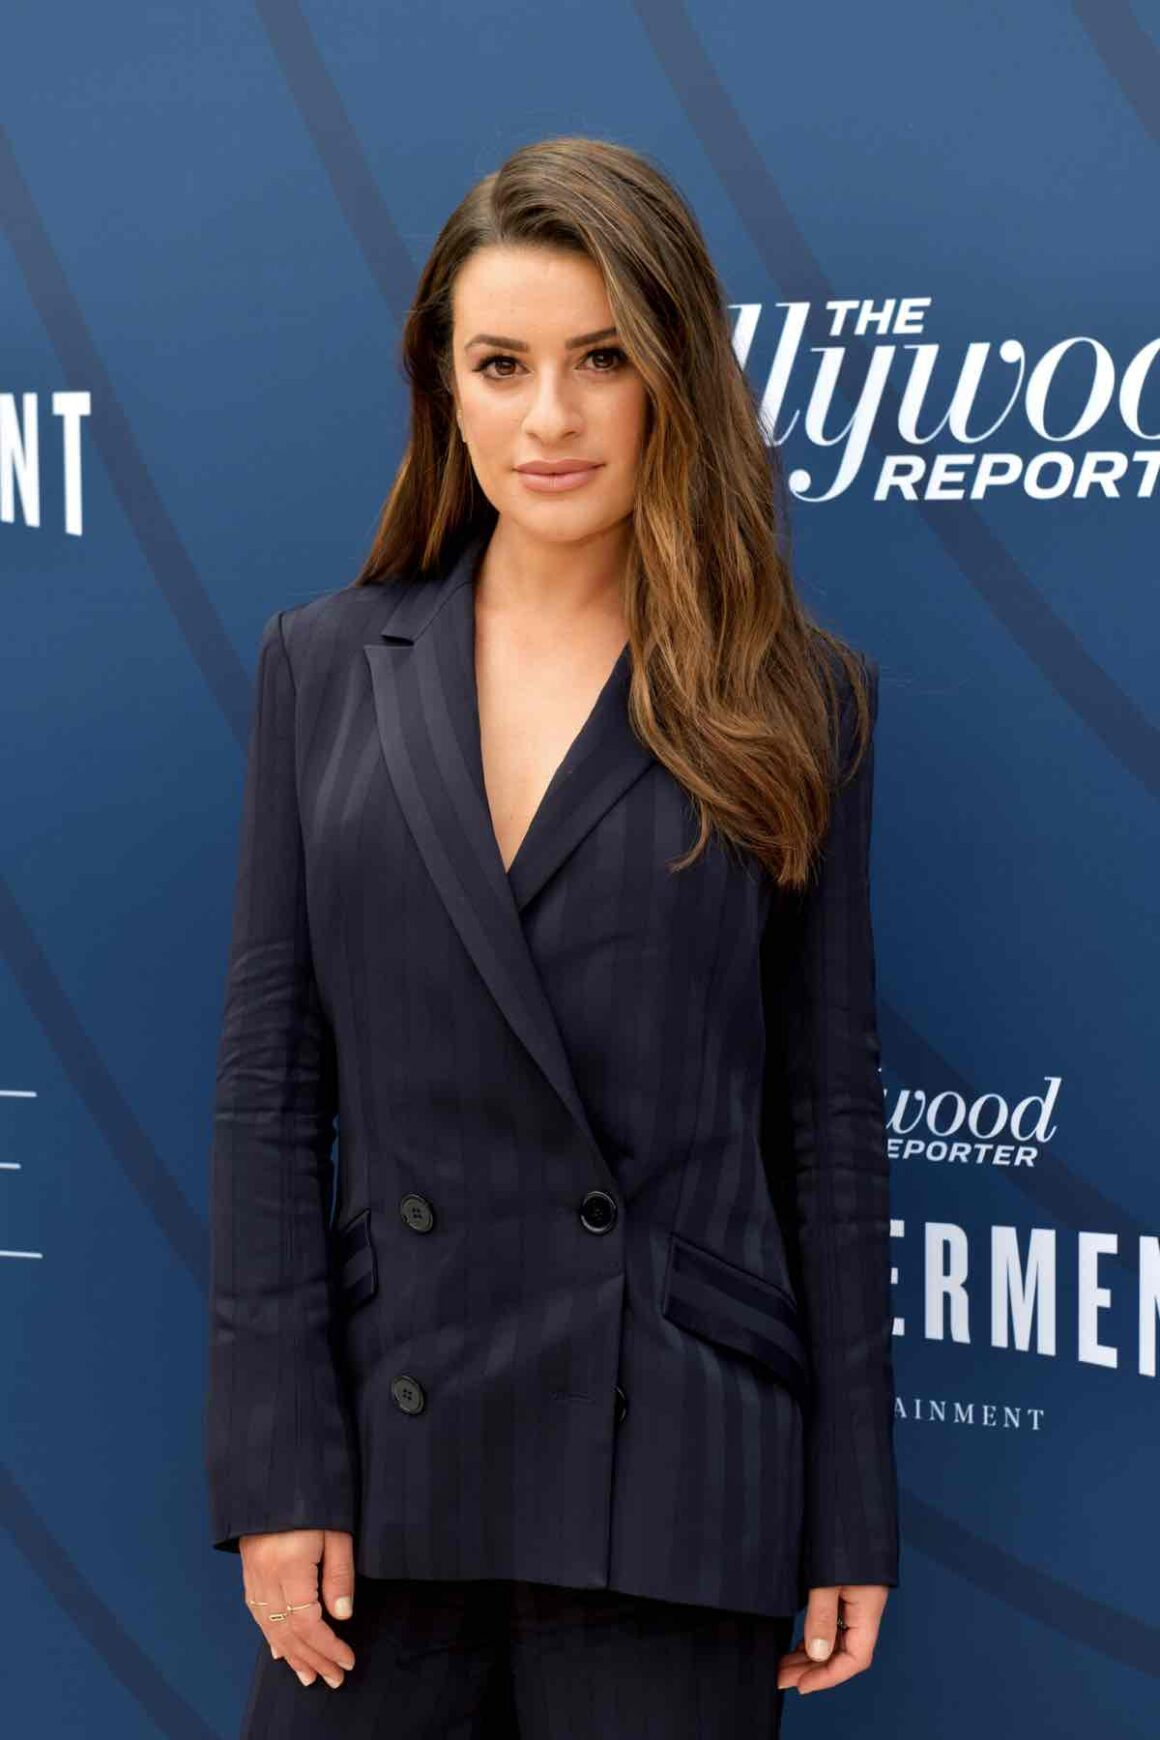 Lea Michele The Hollywood Reporter's Empowerment In Entertainment Event 2019 - Arrivals